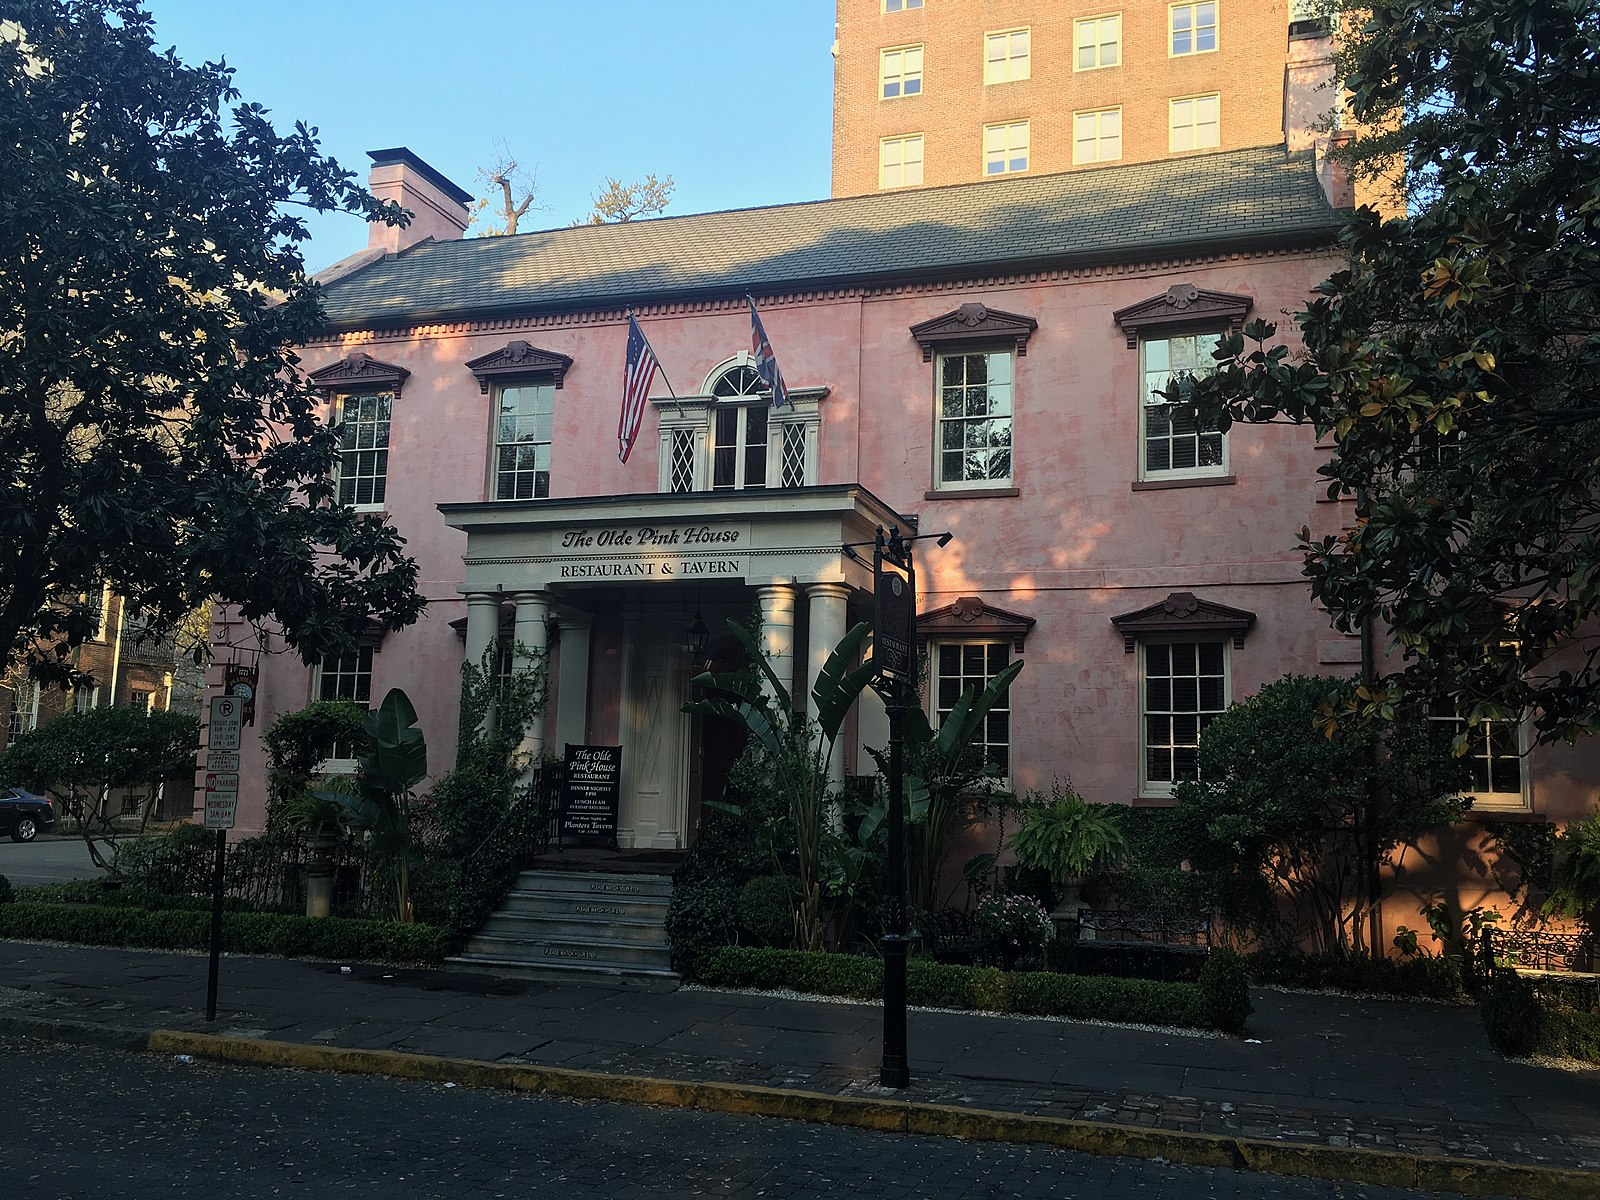 The facade of the Olde Pink House flanked by trees and landscaping.